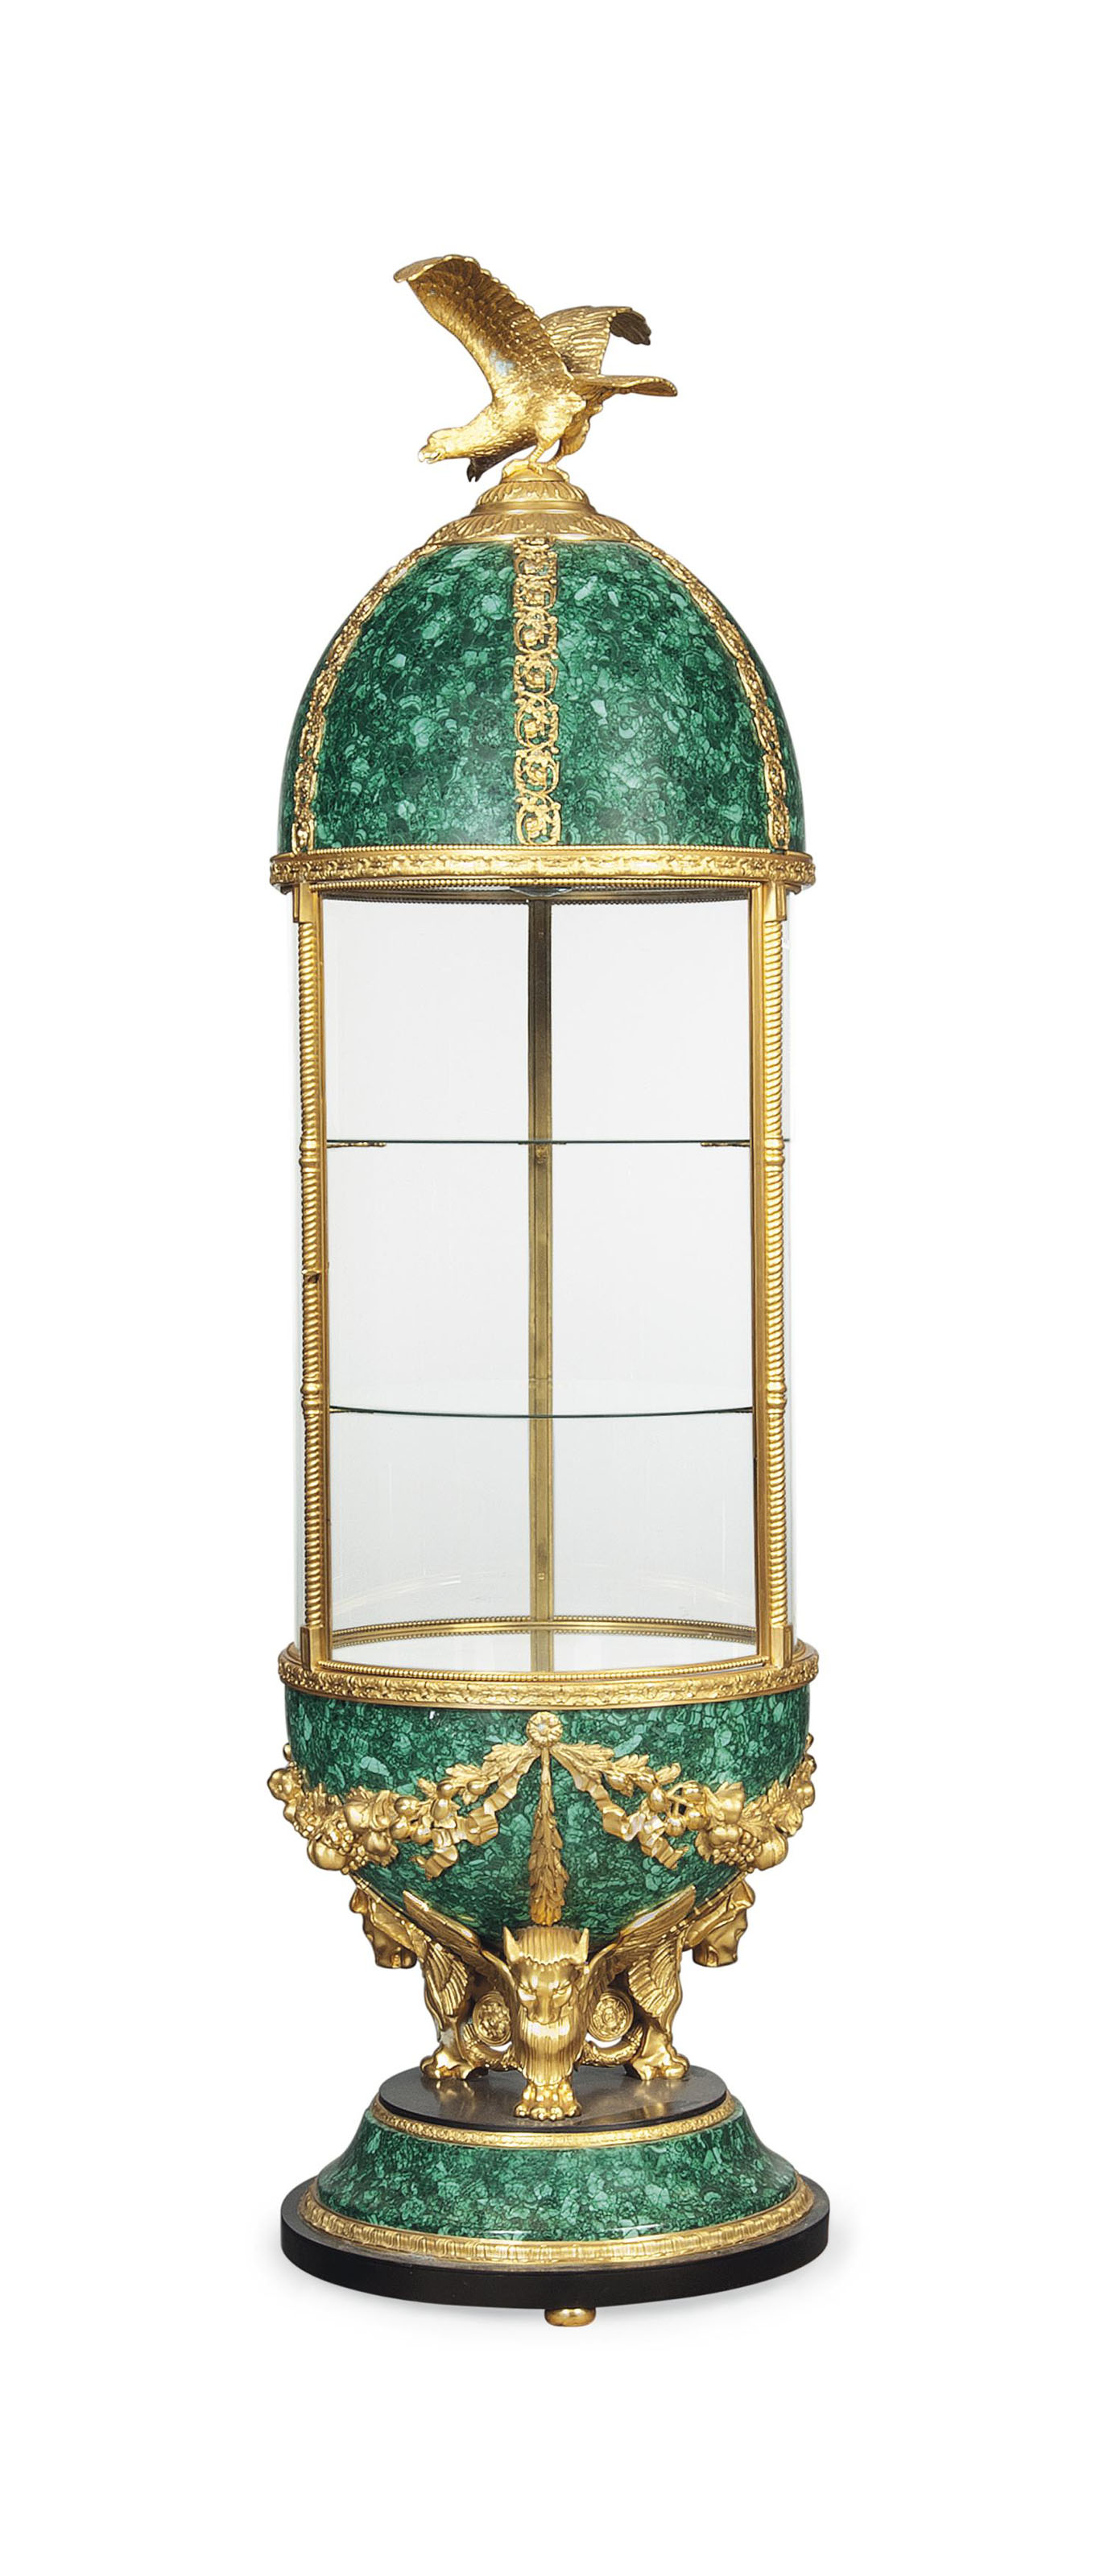 A LARGE MALACHITE AND GILT-BRONZE DISPLAY CABINET